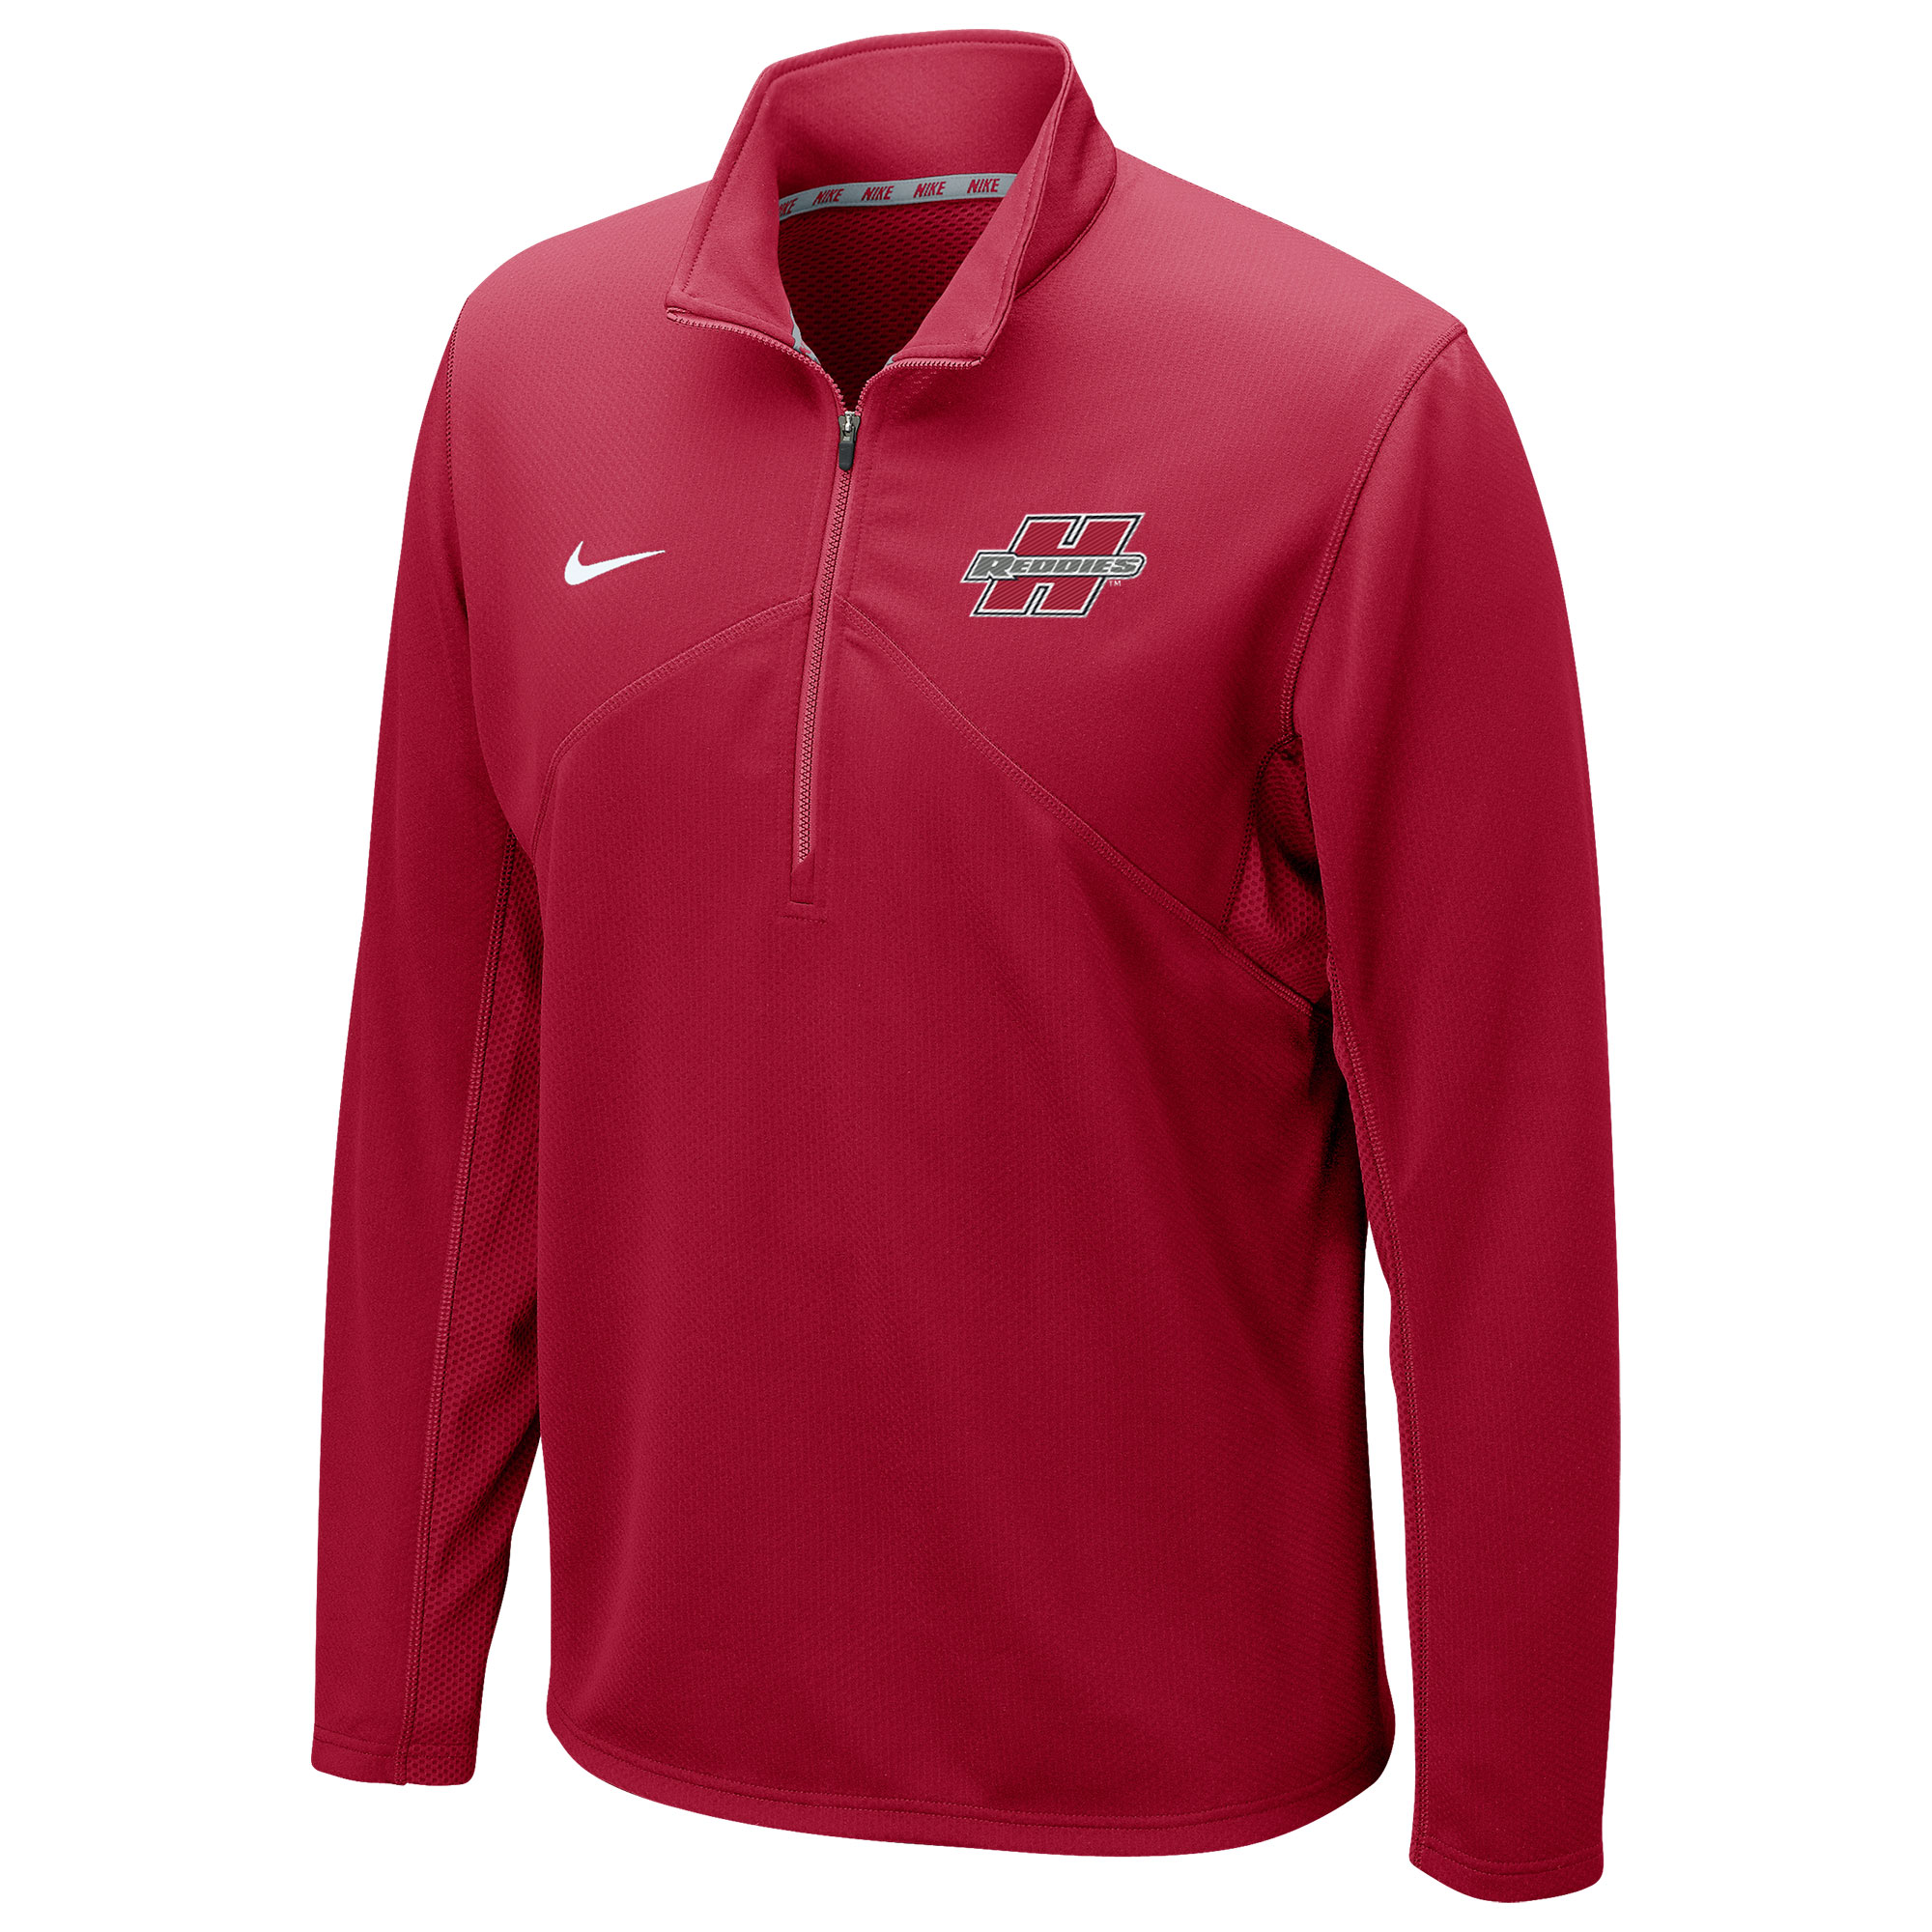 RED DRIFIT TRAINING 1/4 ZIP PULLOVER